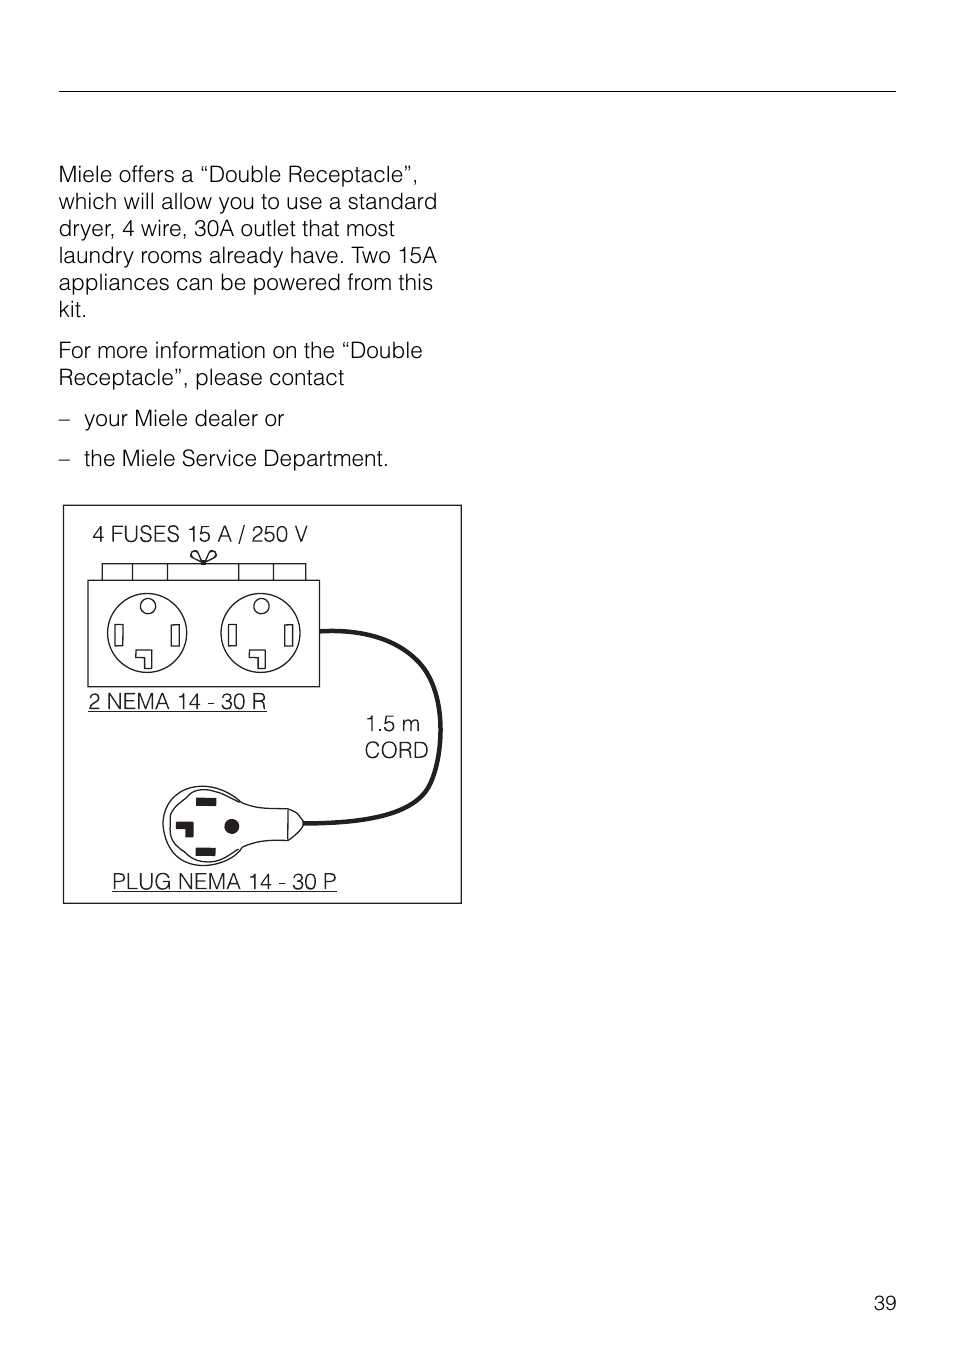 medium resolution of grounding instructions and electrical connection double receptacle miele novotronic w 1903 user manual page 39 44